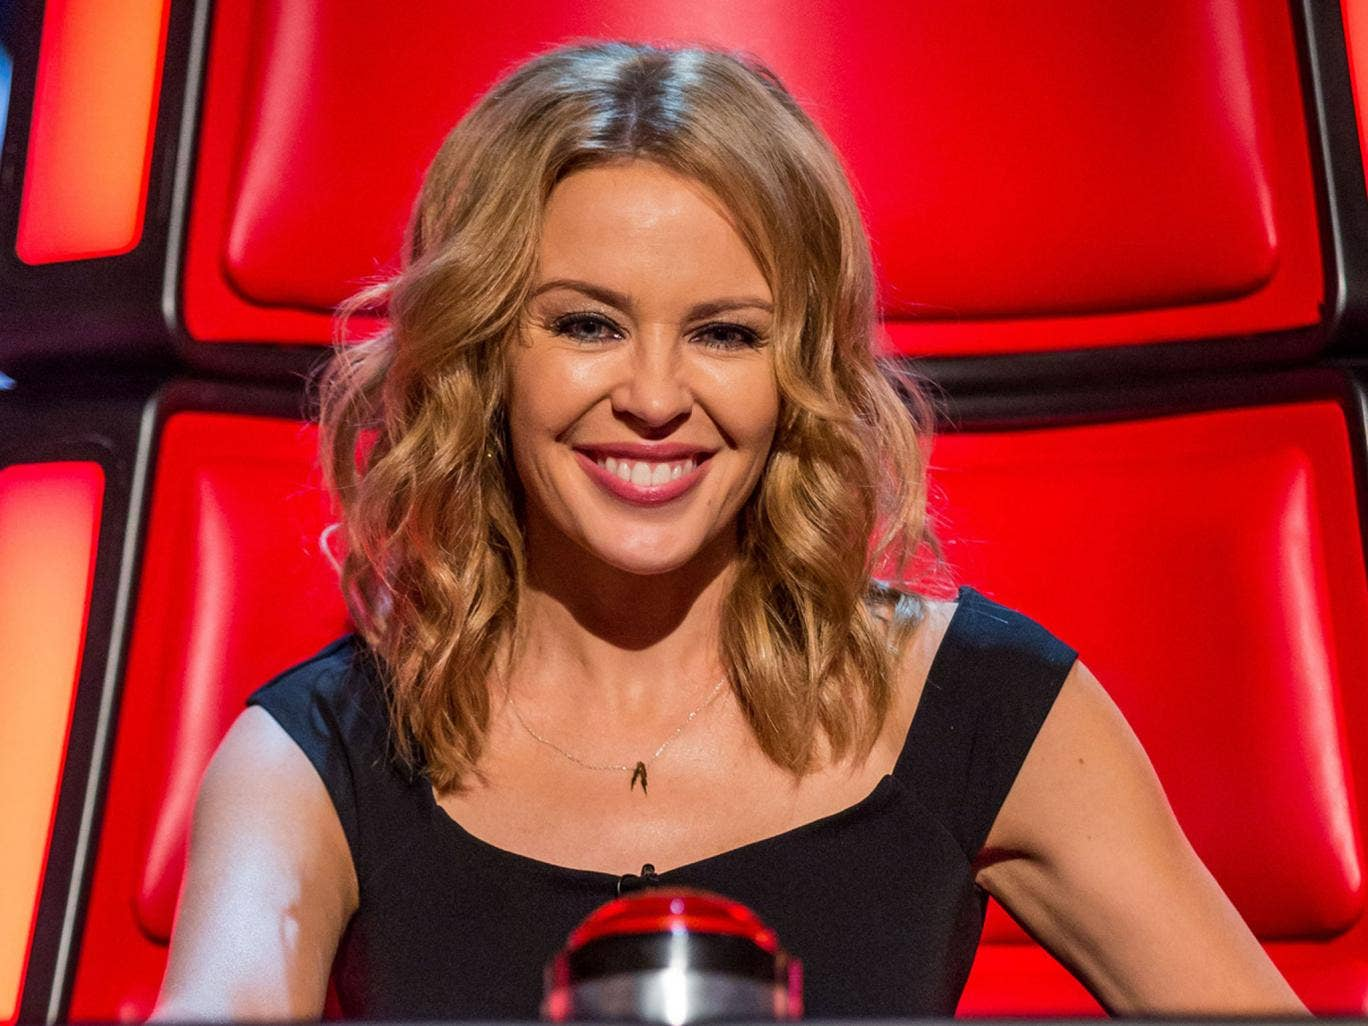 Kylie has helped to boost viewing figures for the talent show